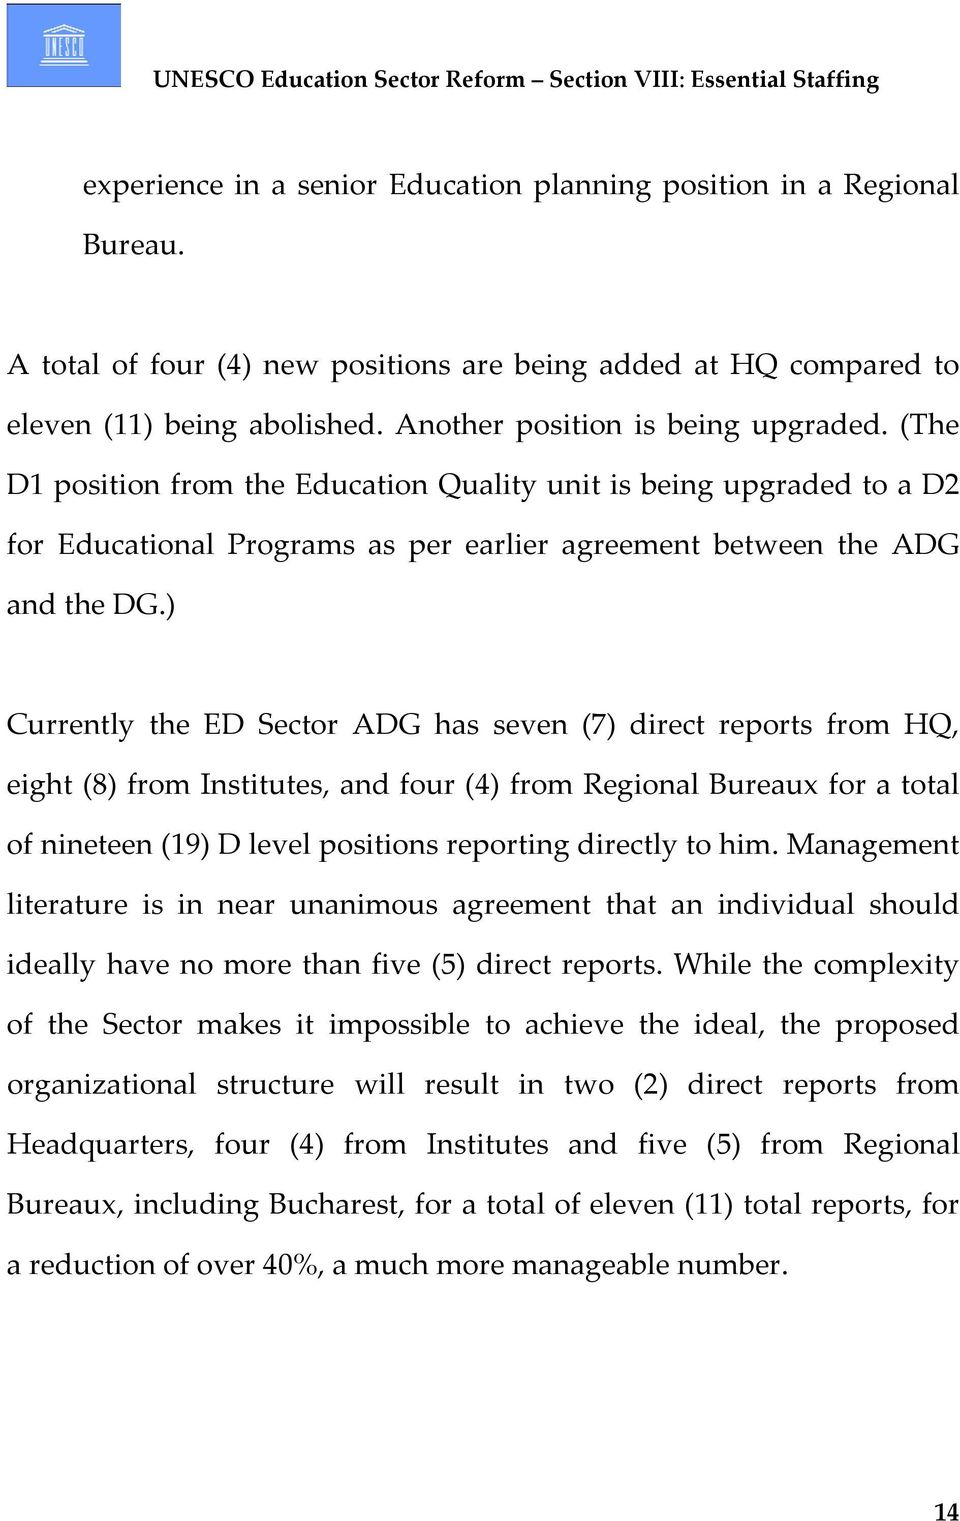 ) Currently the ED Sector ADG has seven (7) direct reports from HQ, eight (8) from Institutes, and four (4) from Regional Bureaux for a total of nineteen (19) D level positions reporting directly to